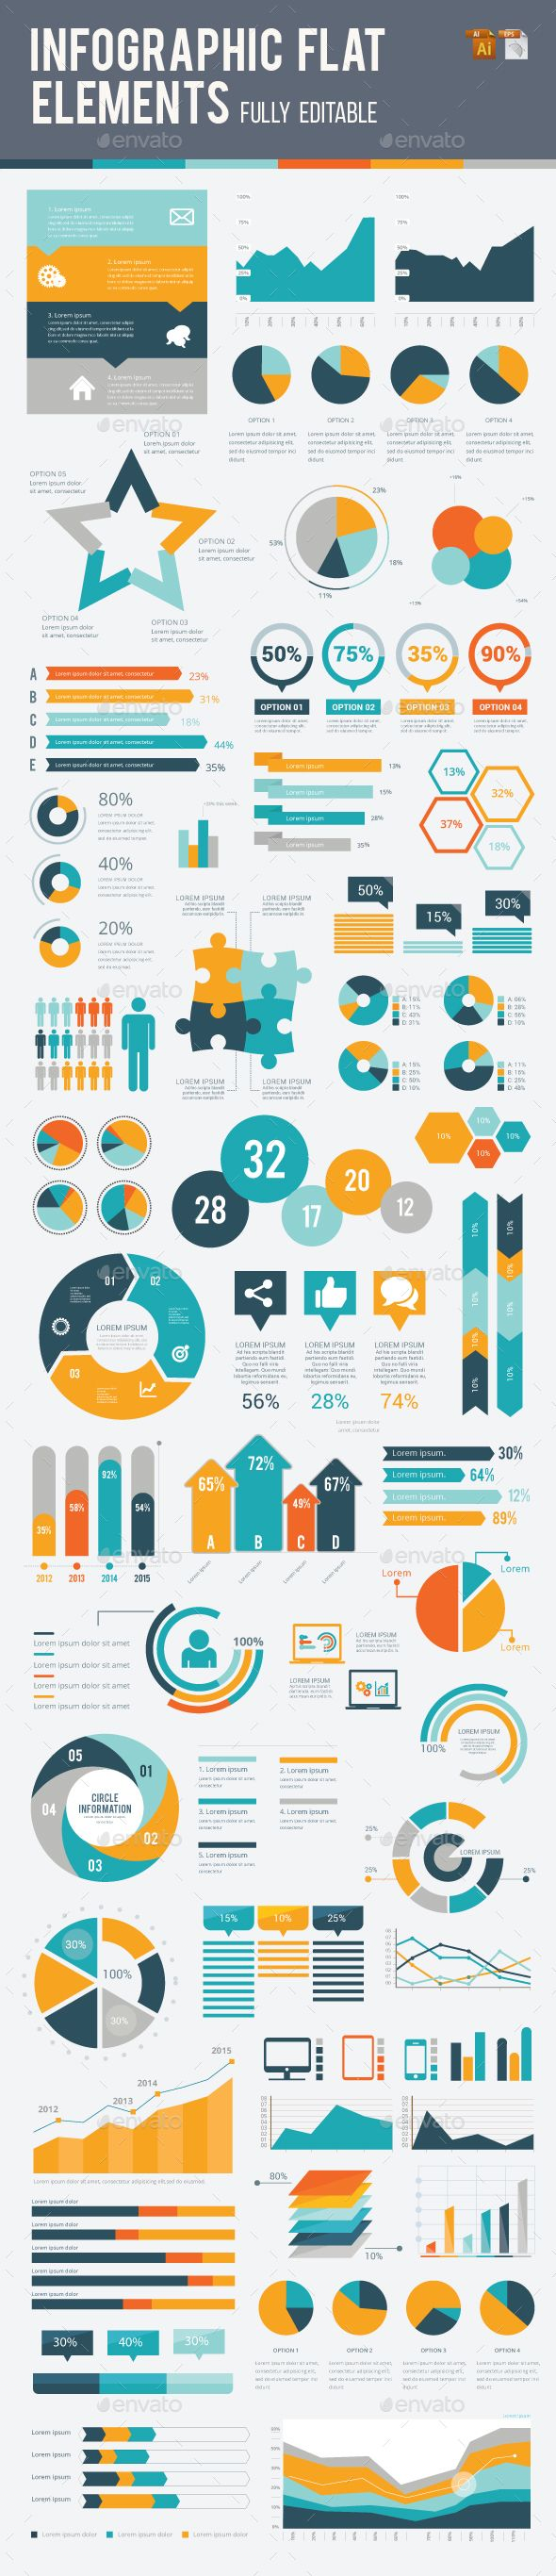 Infographic Flat Elements Vector EPS, AI Illustrator